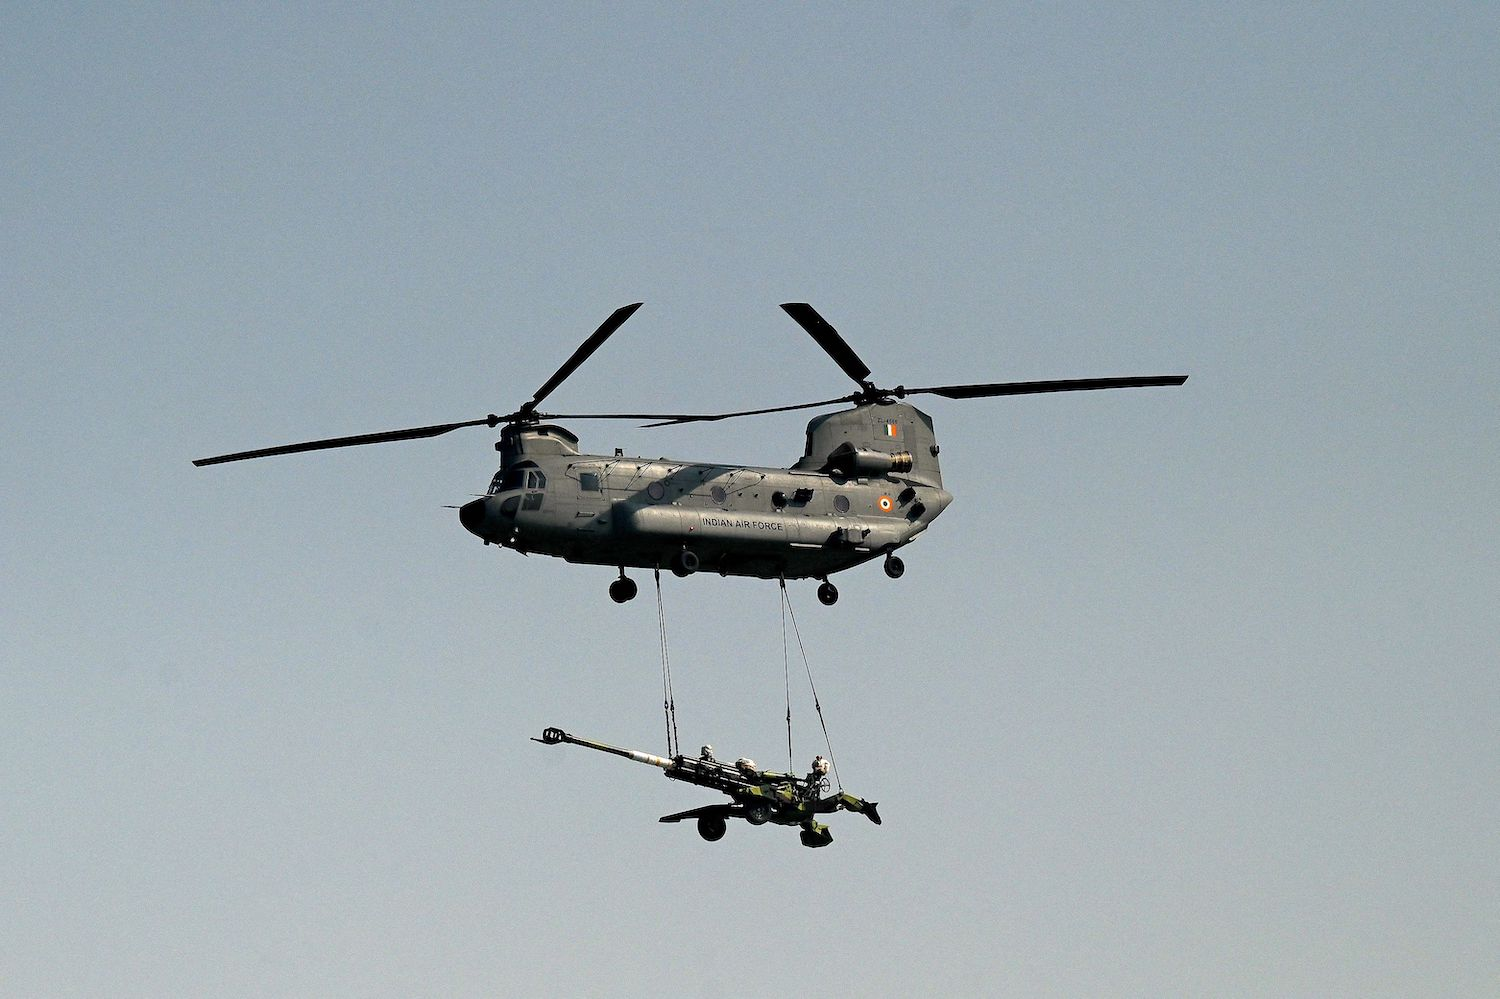 An Indian Air Force Chinook helicopter carries an artillery gun during a military parade.